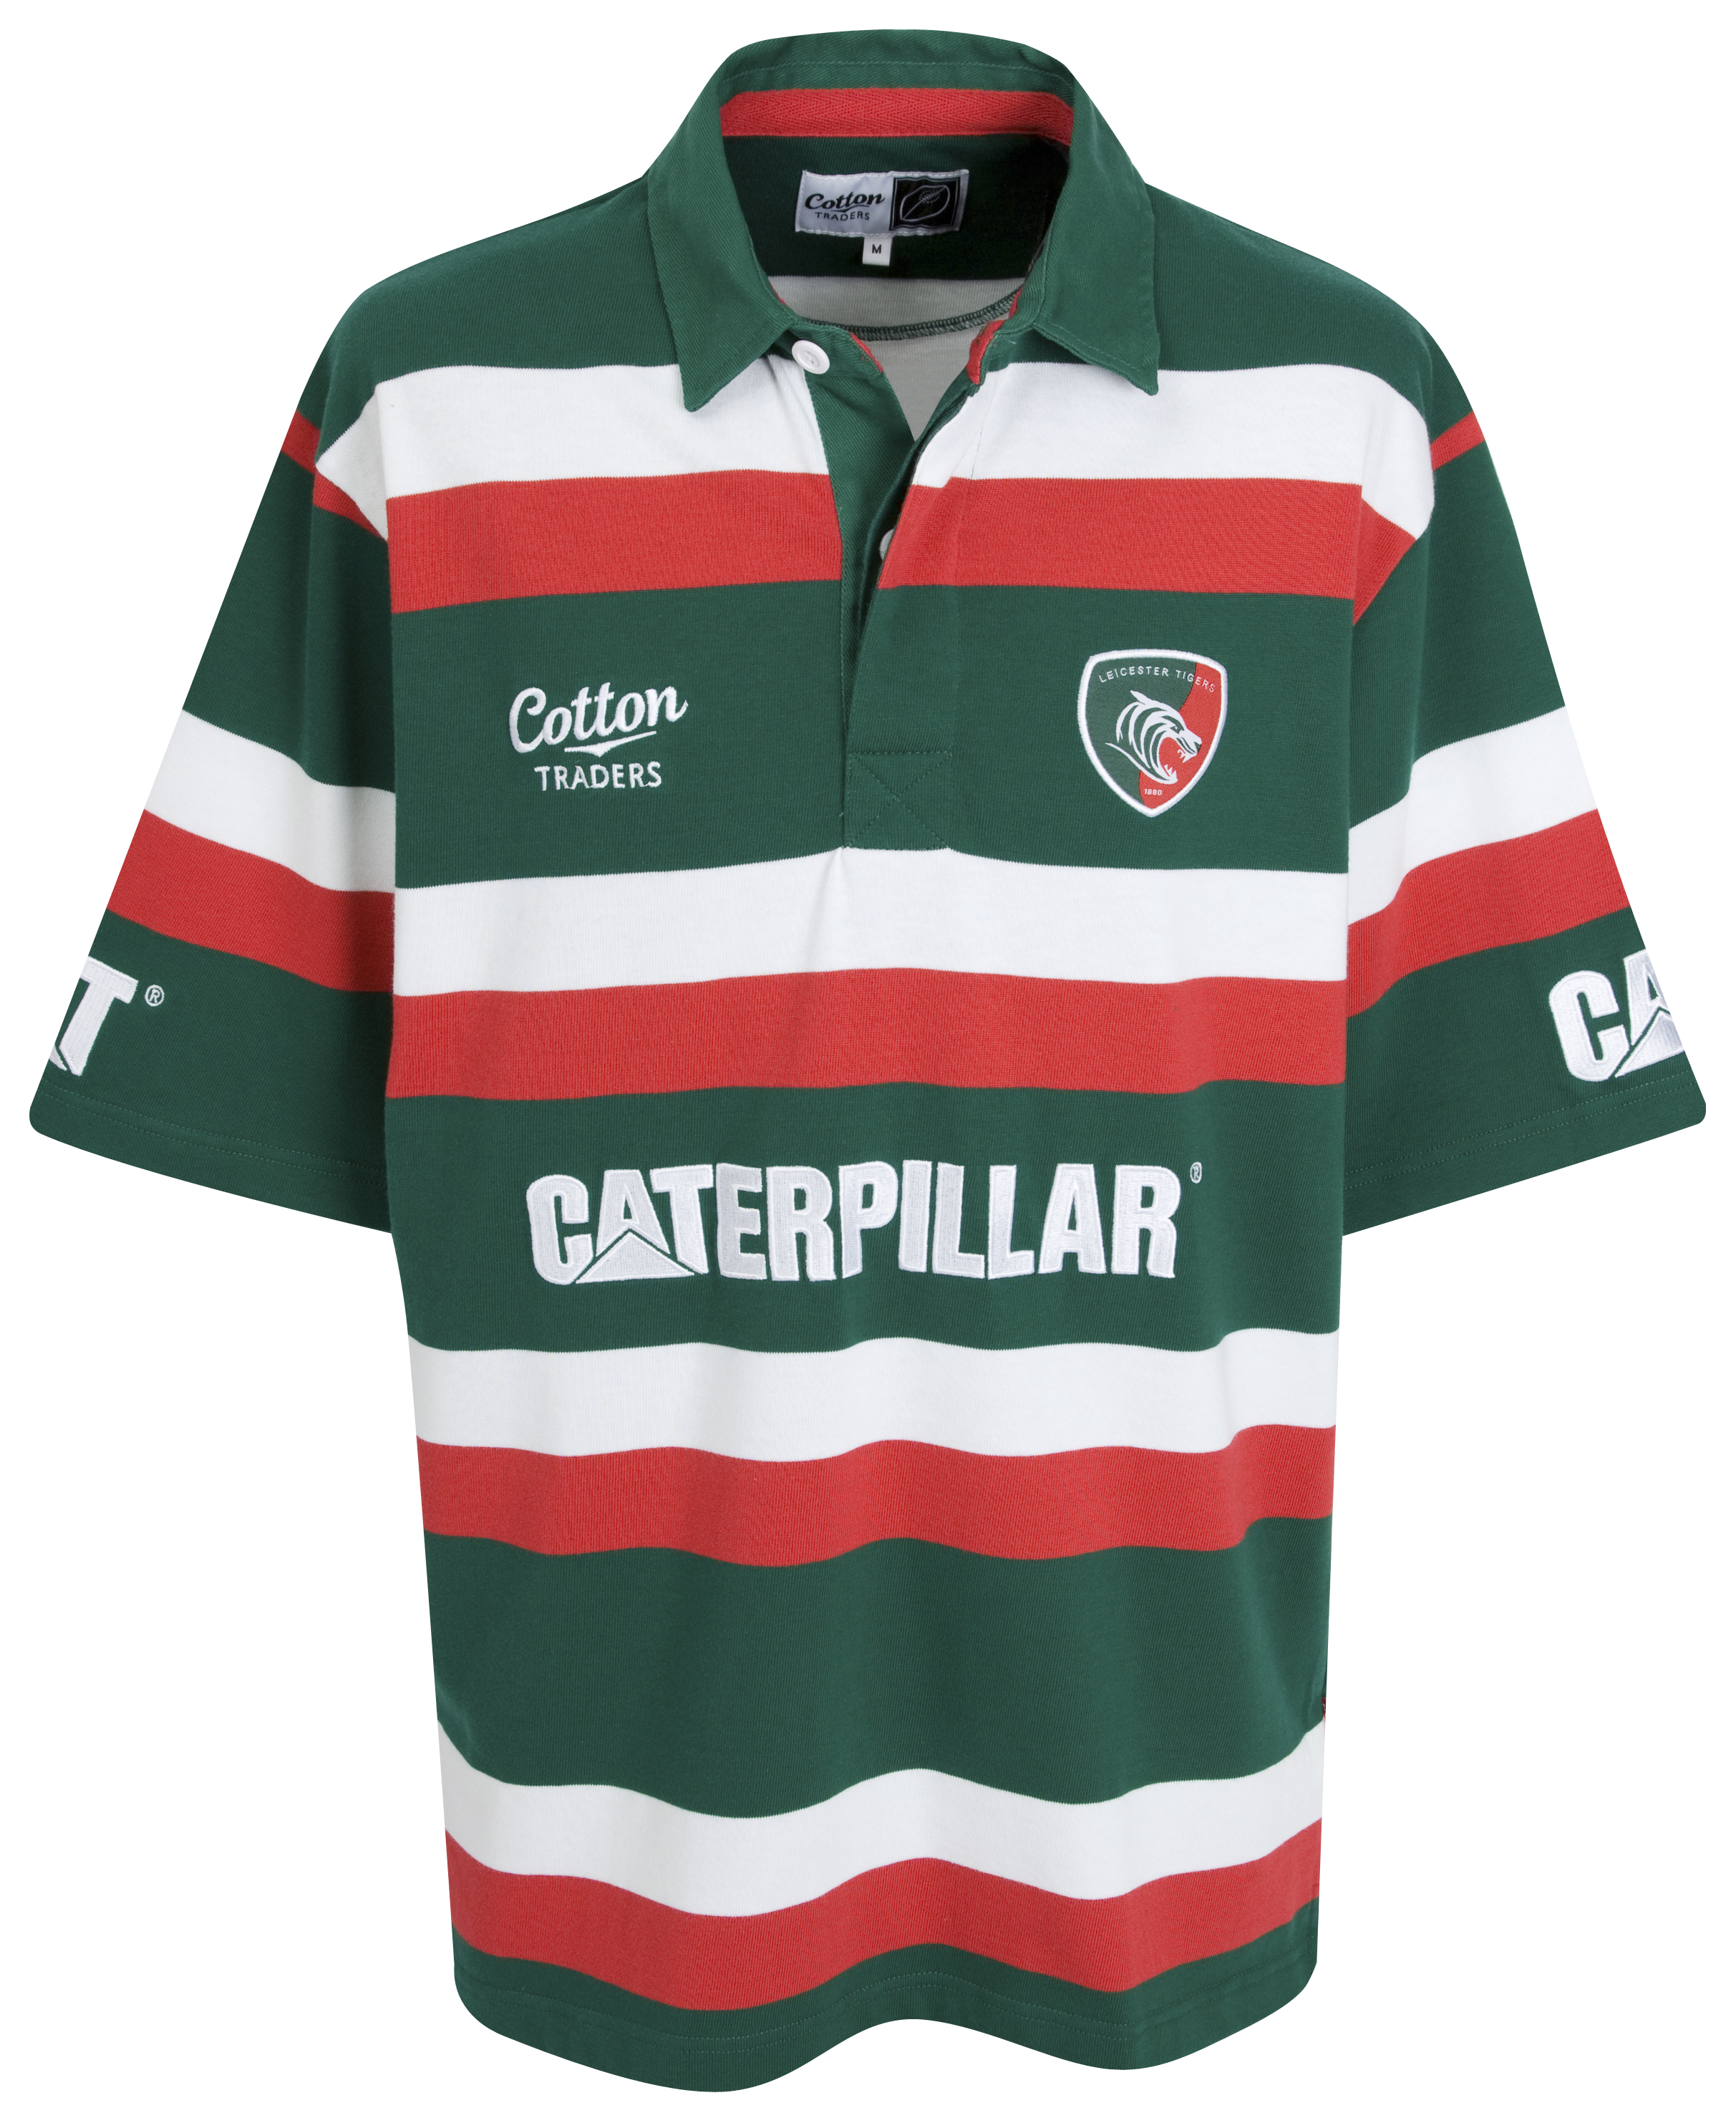 Leicester Tigers 2009/10 Home Rugby Shirt - Green/Red/W